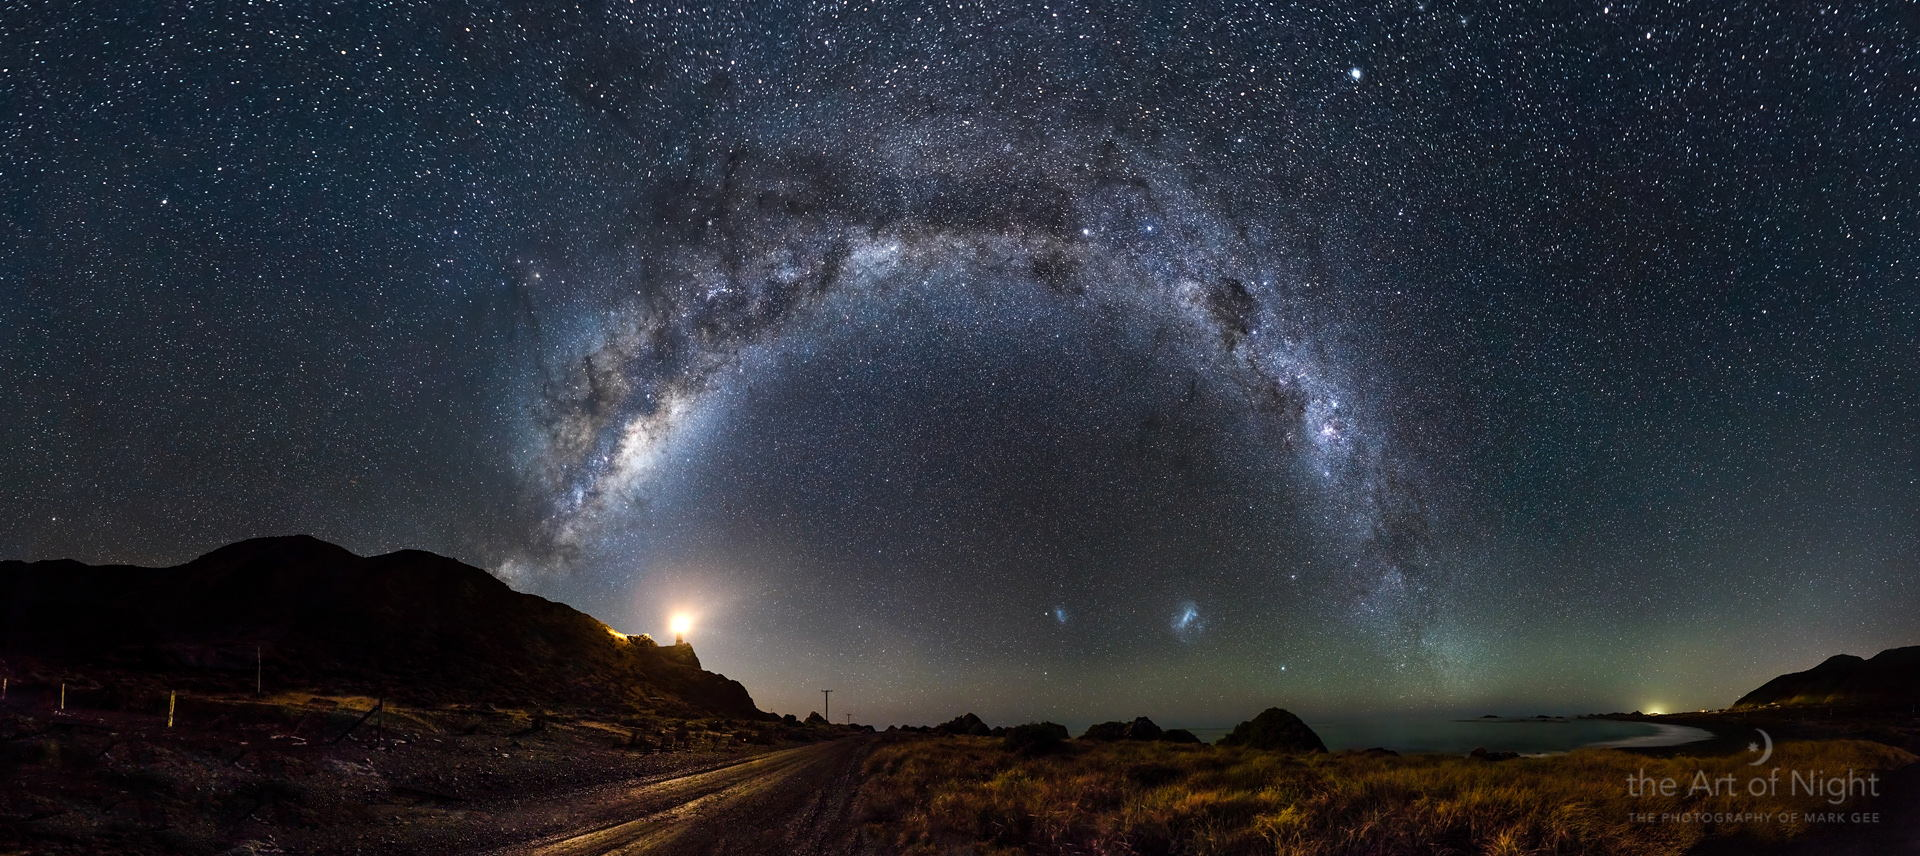 Tutorial: Learn The Art of Astrophotography